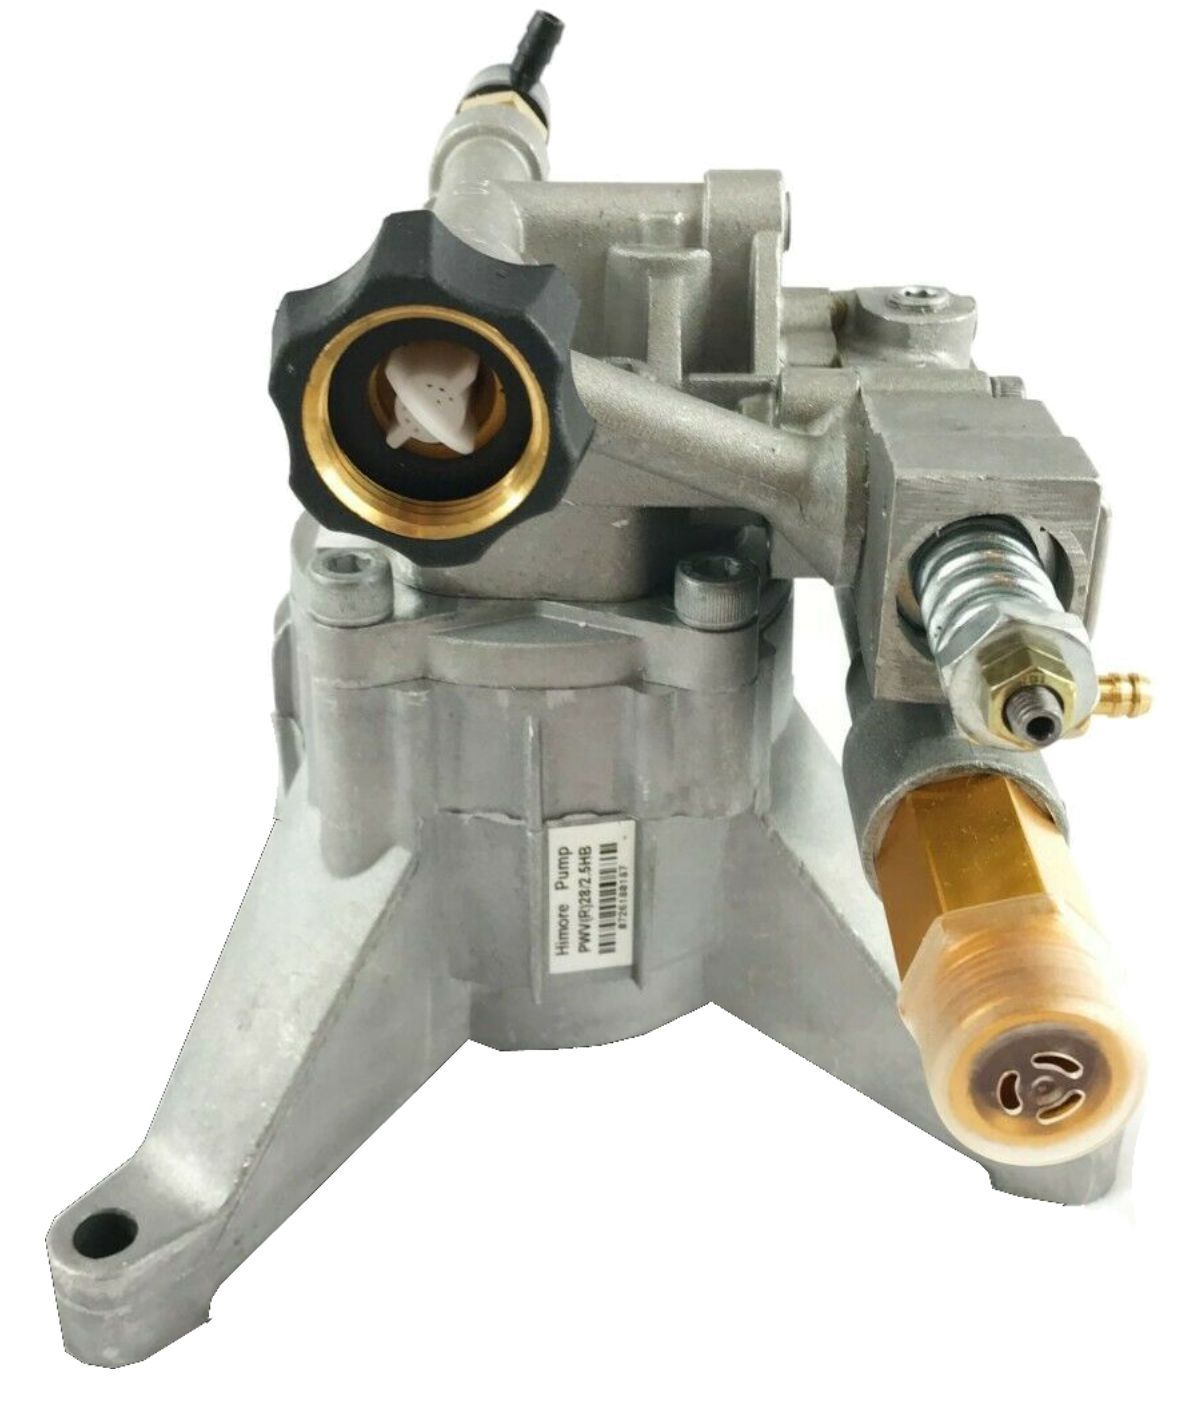 "2700 PSI Pressure Washer Pump Fits Many Models 7/8"" Vertical Shaft - Brand - AE-Power"